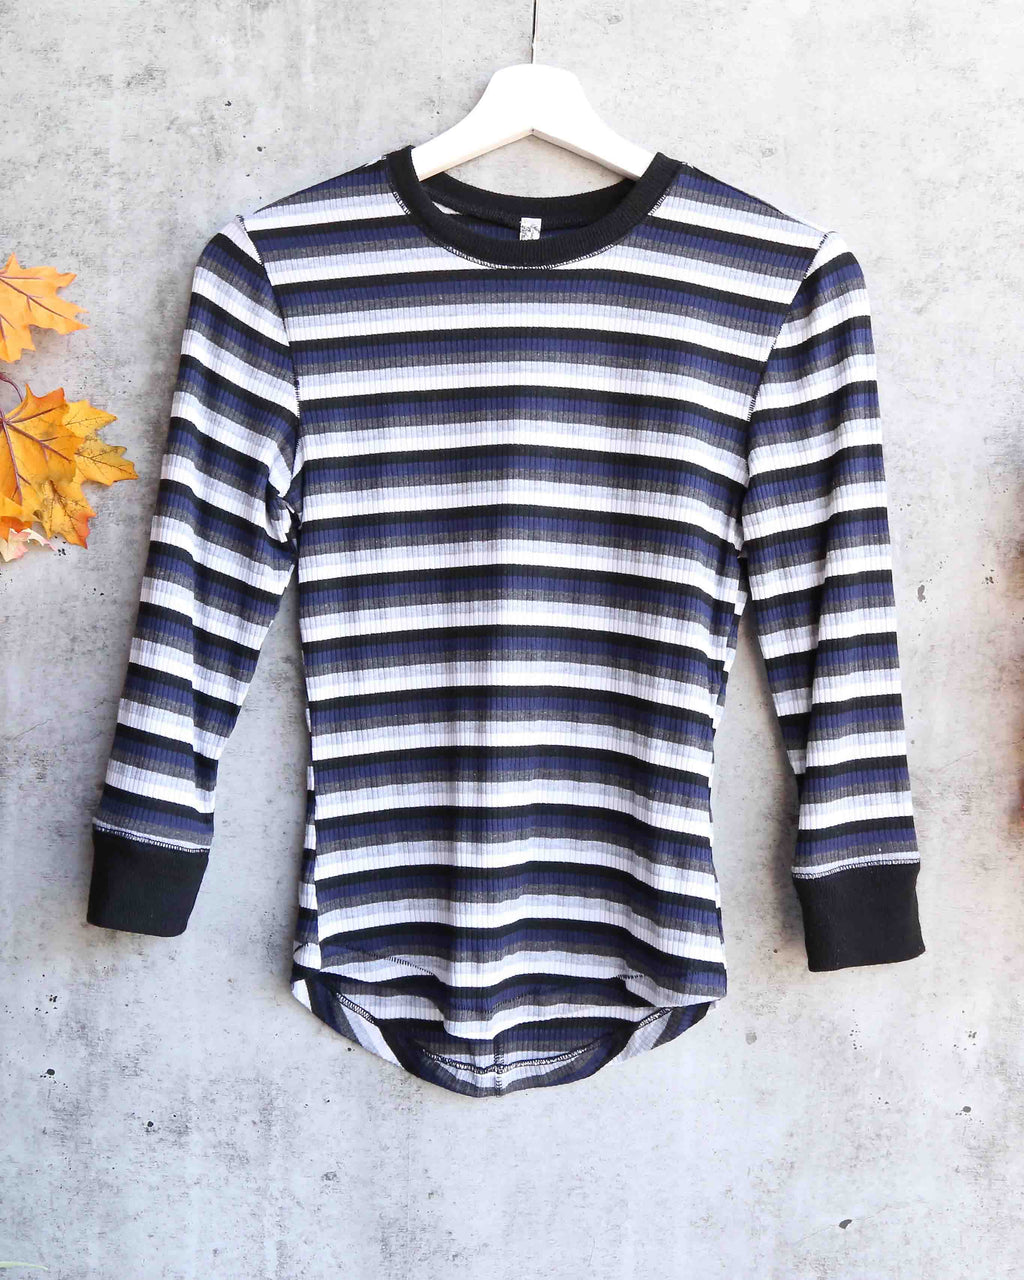 Free People - Good on You Stripe Long-Sleeve T-Shirt - overcast / grey